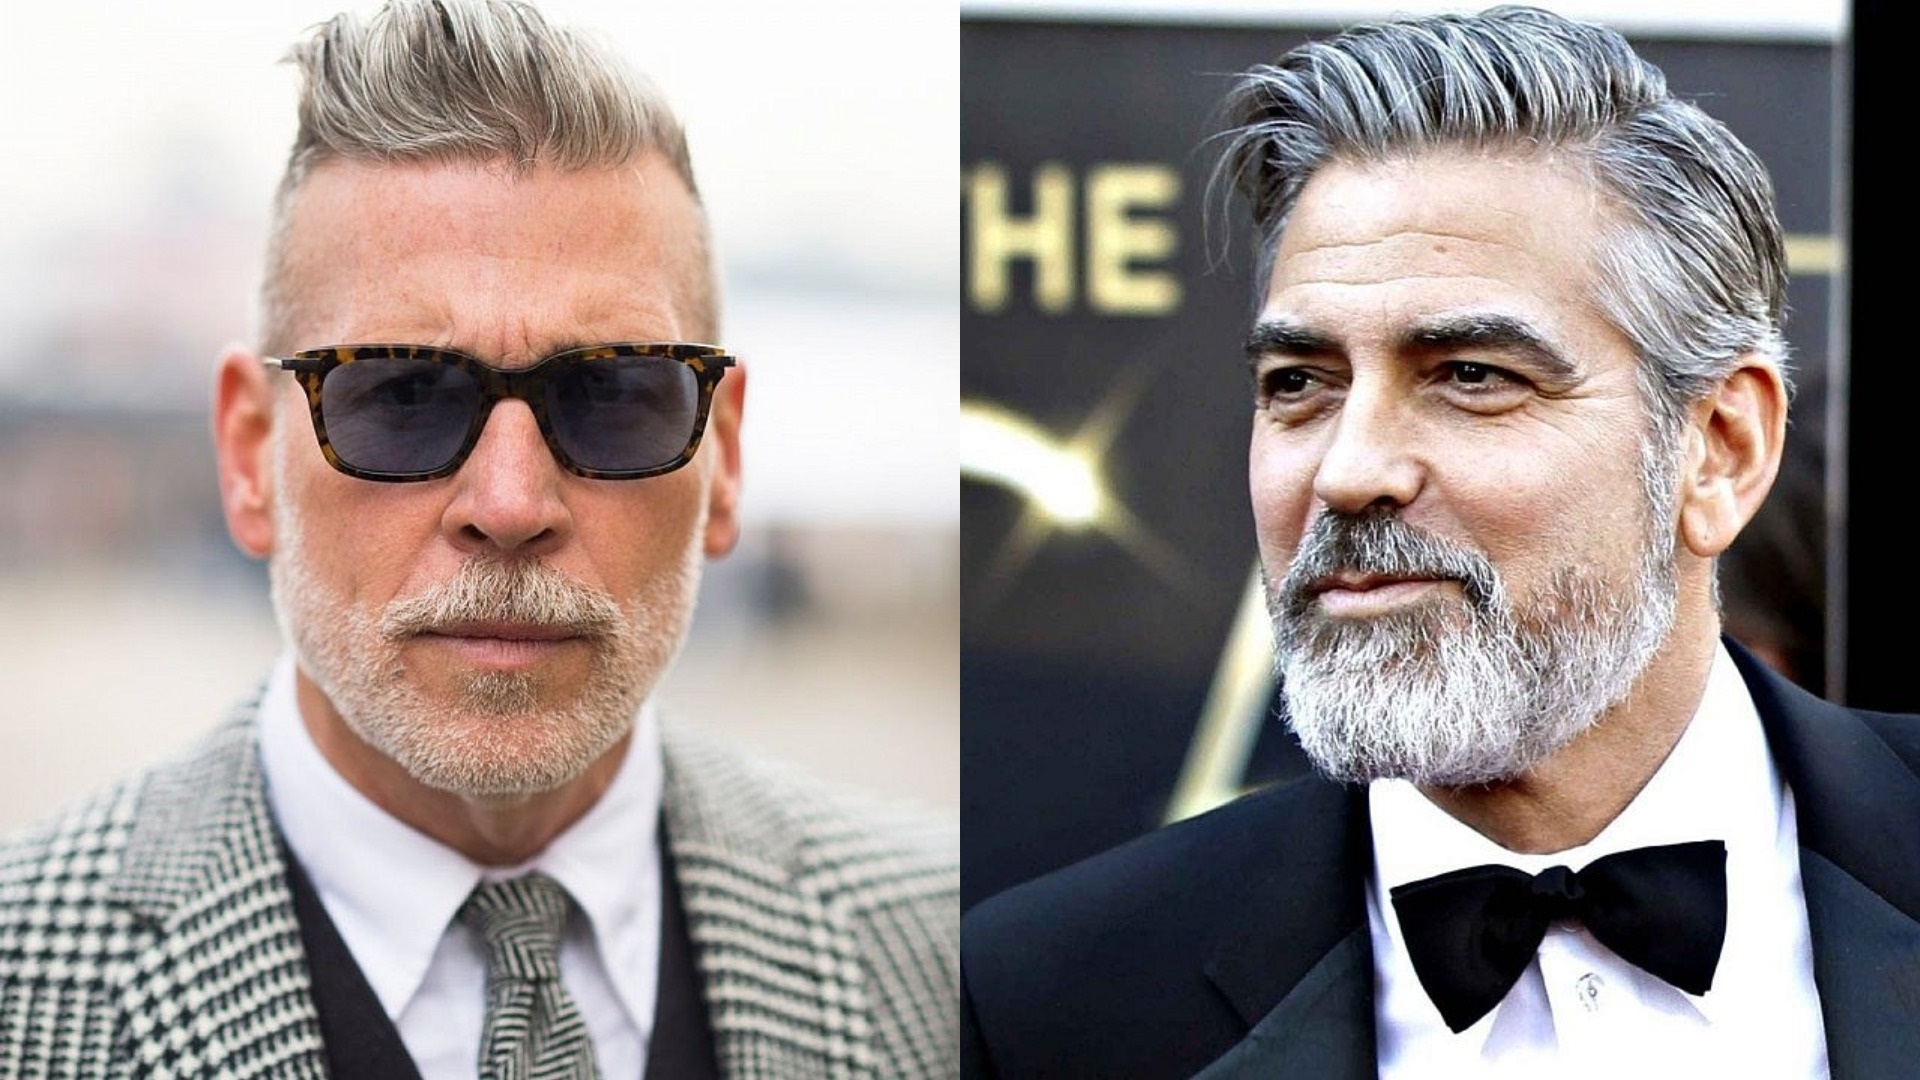 Grey-Hairstyles-for-Men Grey Hairstyles for Men to Look Smart and Dashing